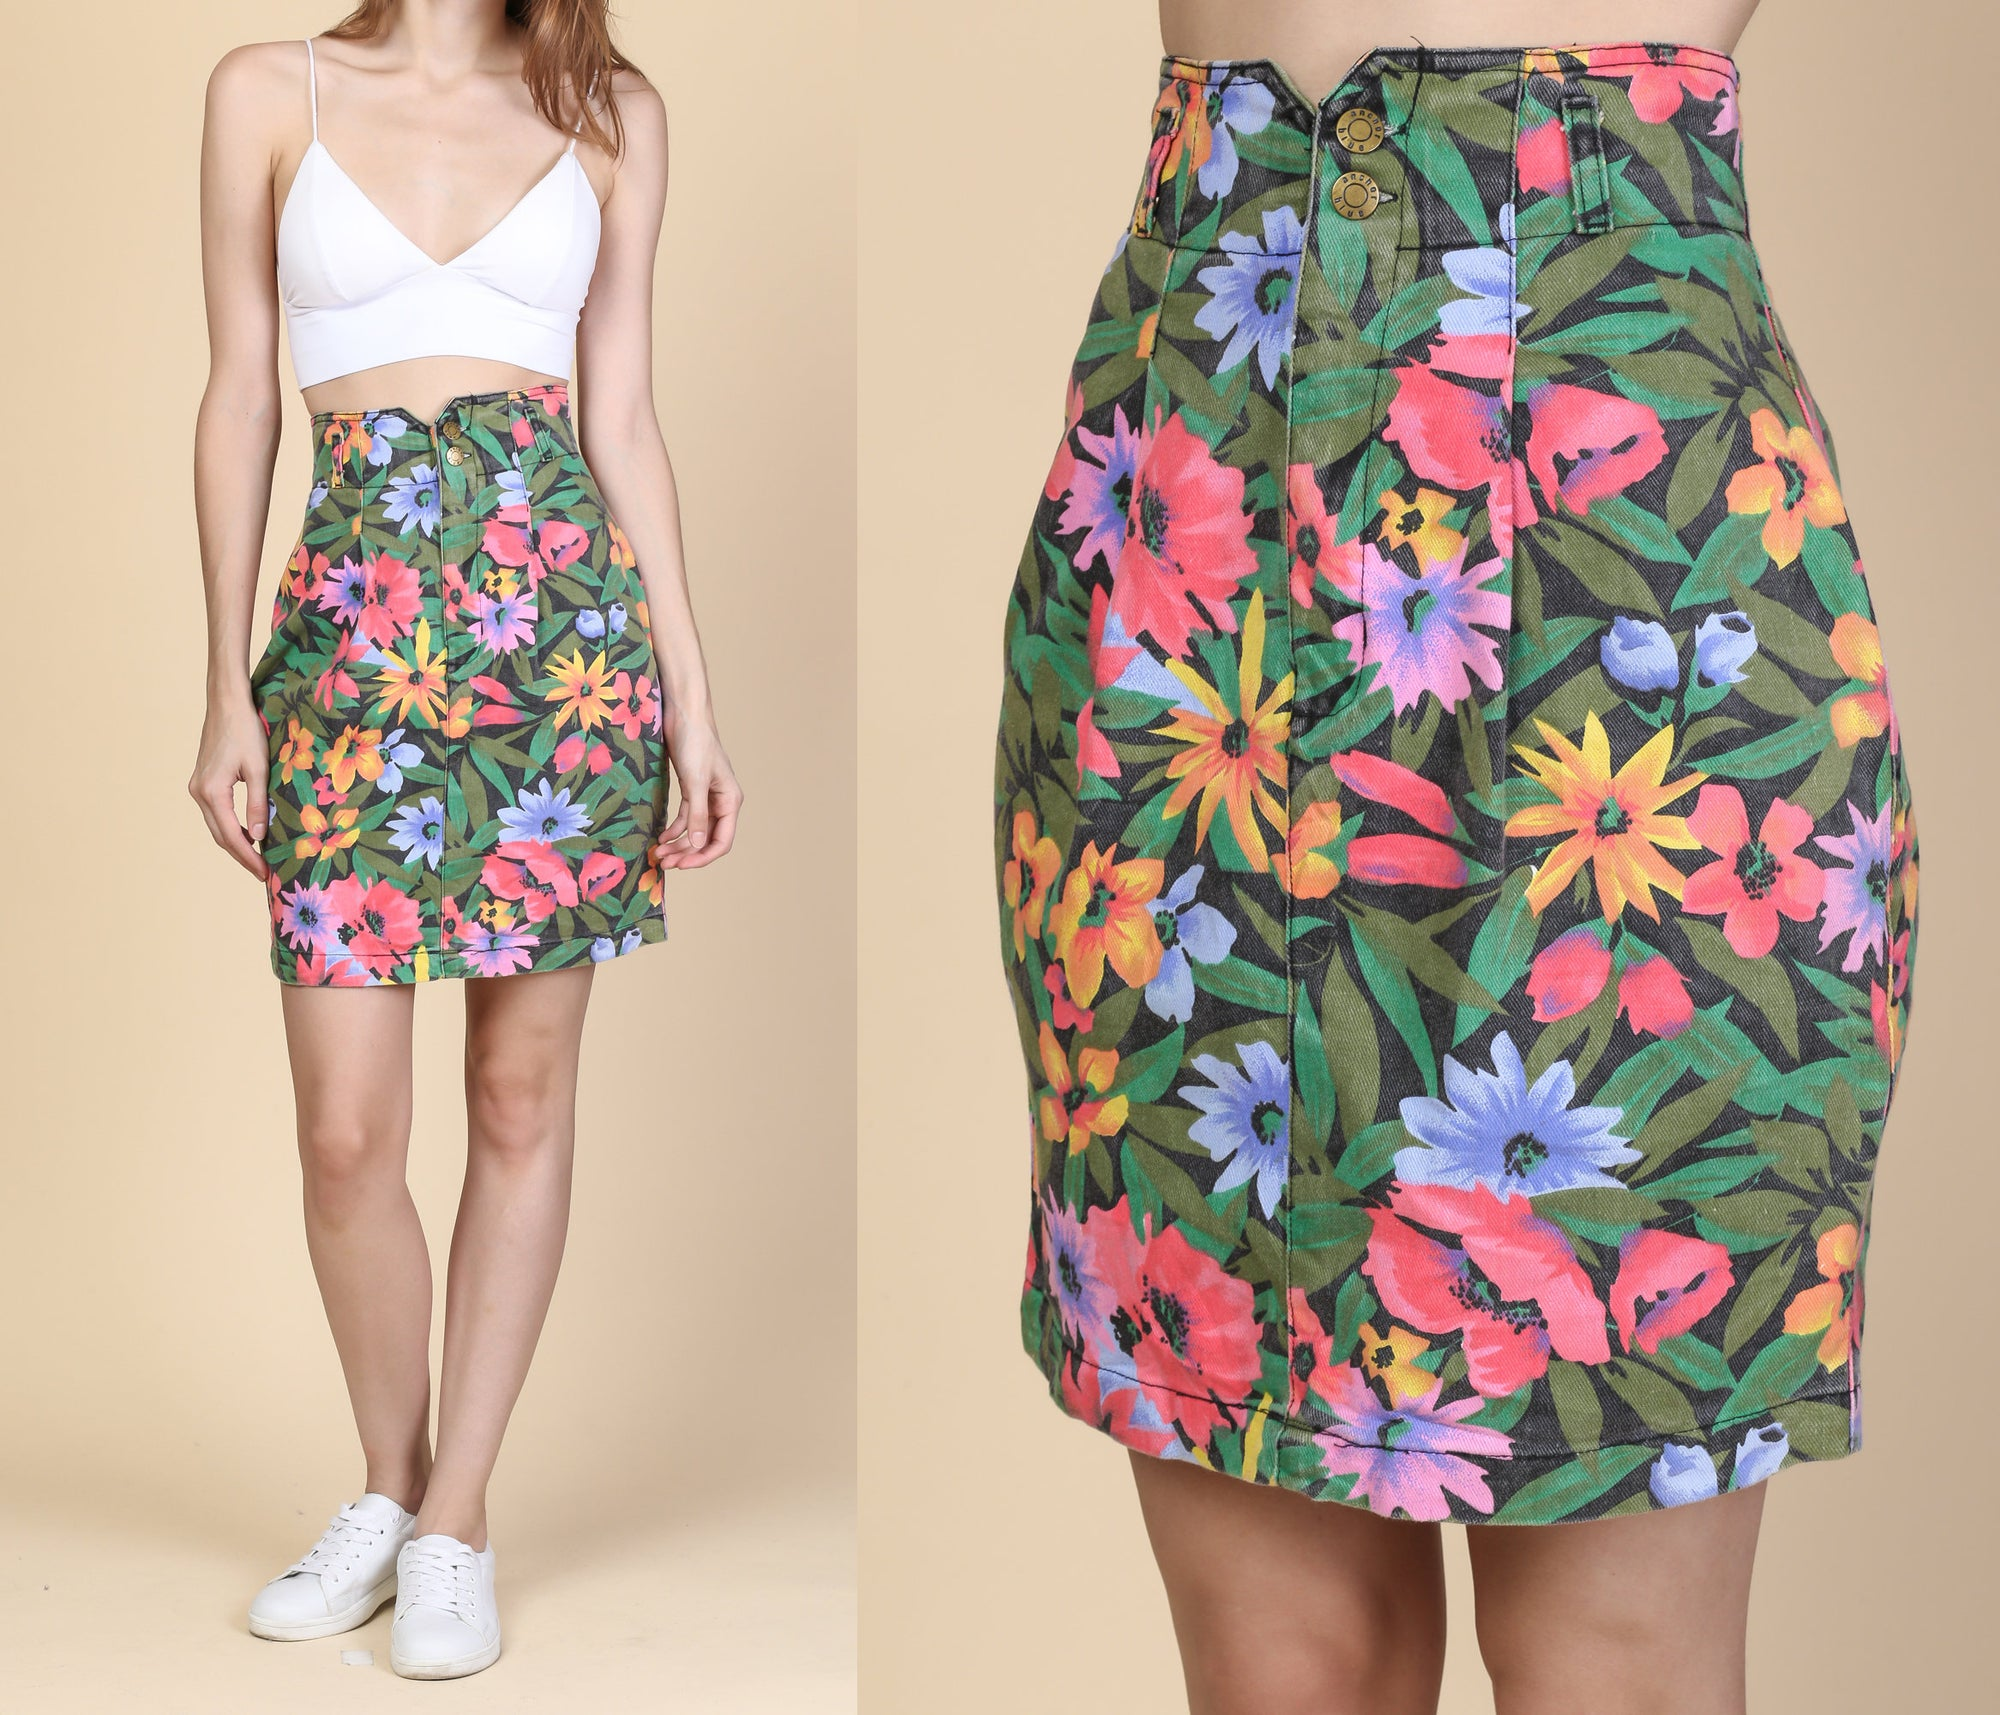 90s Floral High Waist Jean Skirt - Extra Small